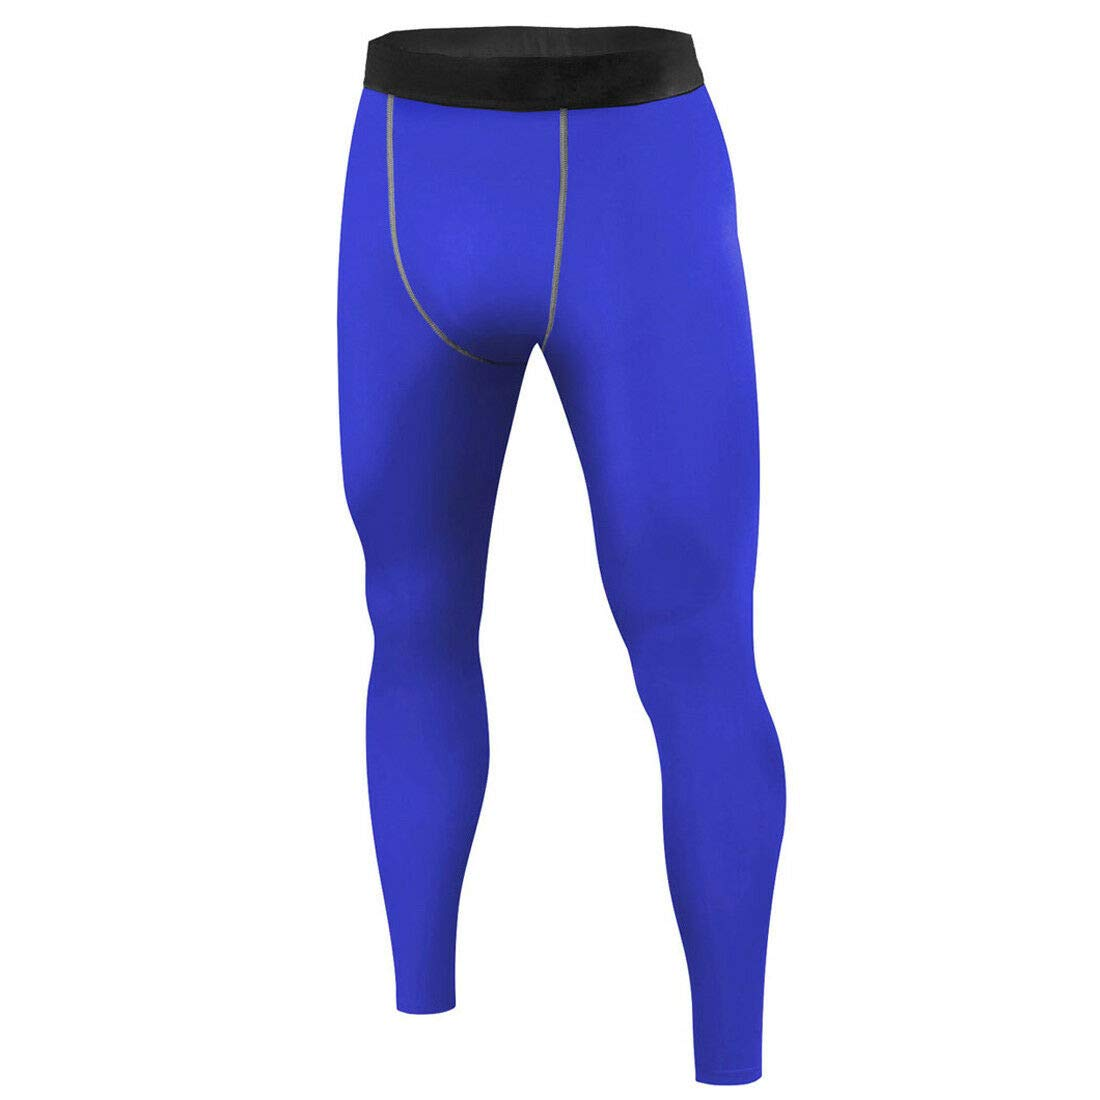 Mens Navy Blue Compression Long Pants Under Base Layer Tights #HLFN XL-XXL Peppermint Store